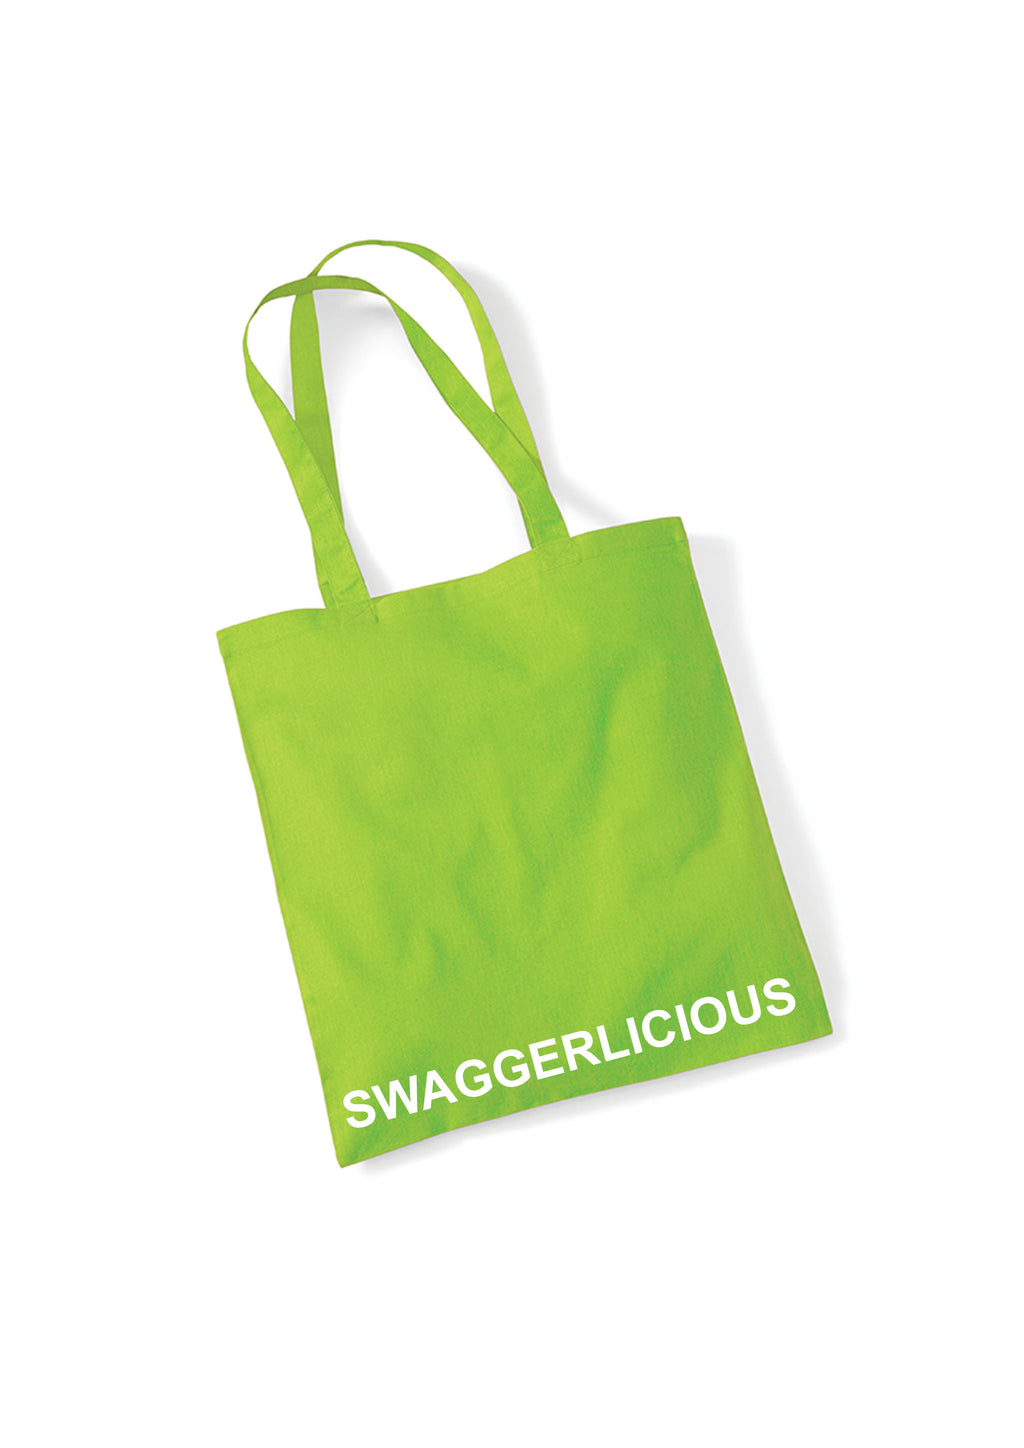 LIME GREEN SWAGGERLICIOUS TOTE BAG - swaggerlicious-clothing.com